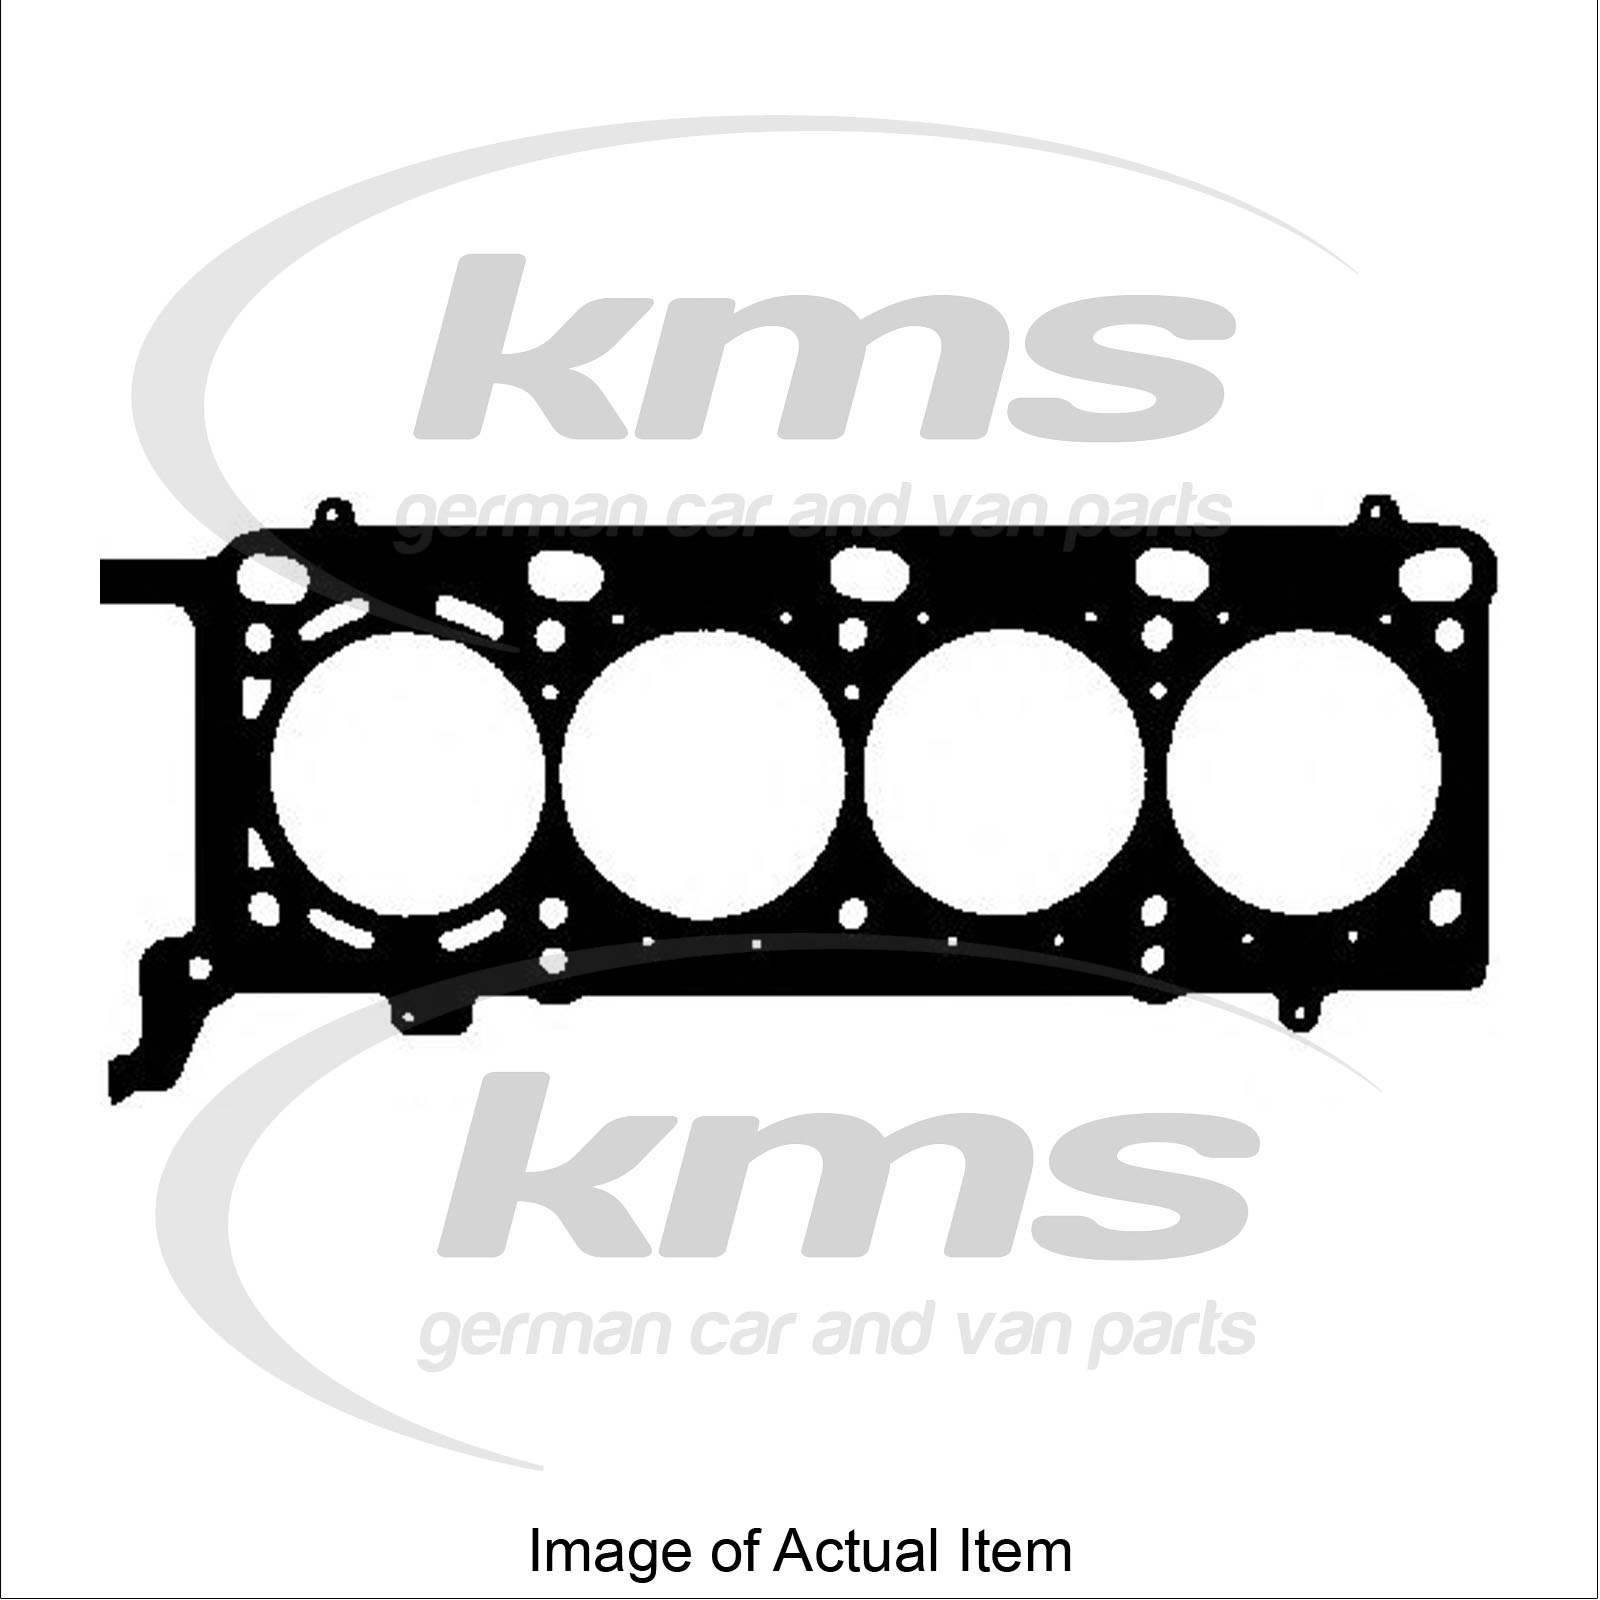 2012 Bmw X5 M Head Gasket: CYLINDER HEAD GASKET BMW X5 (E53) 4.4 I Closed Off-Road